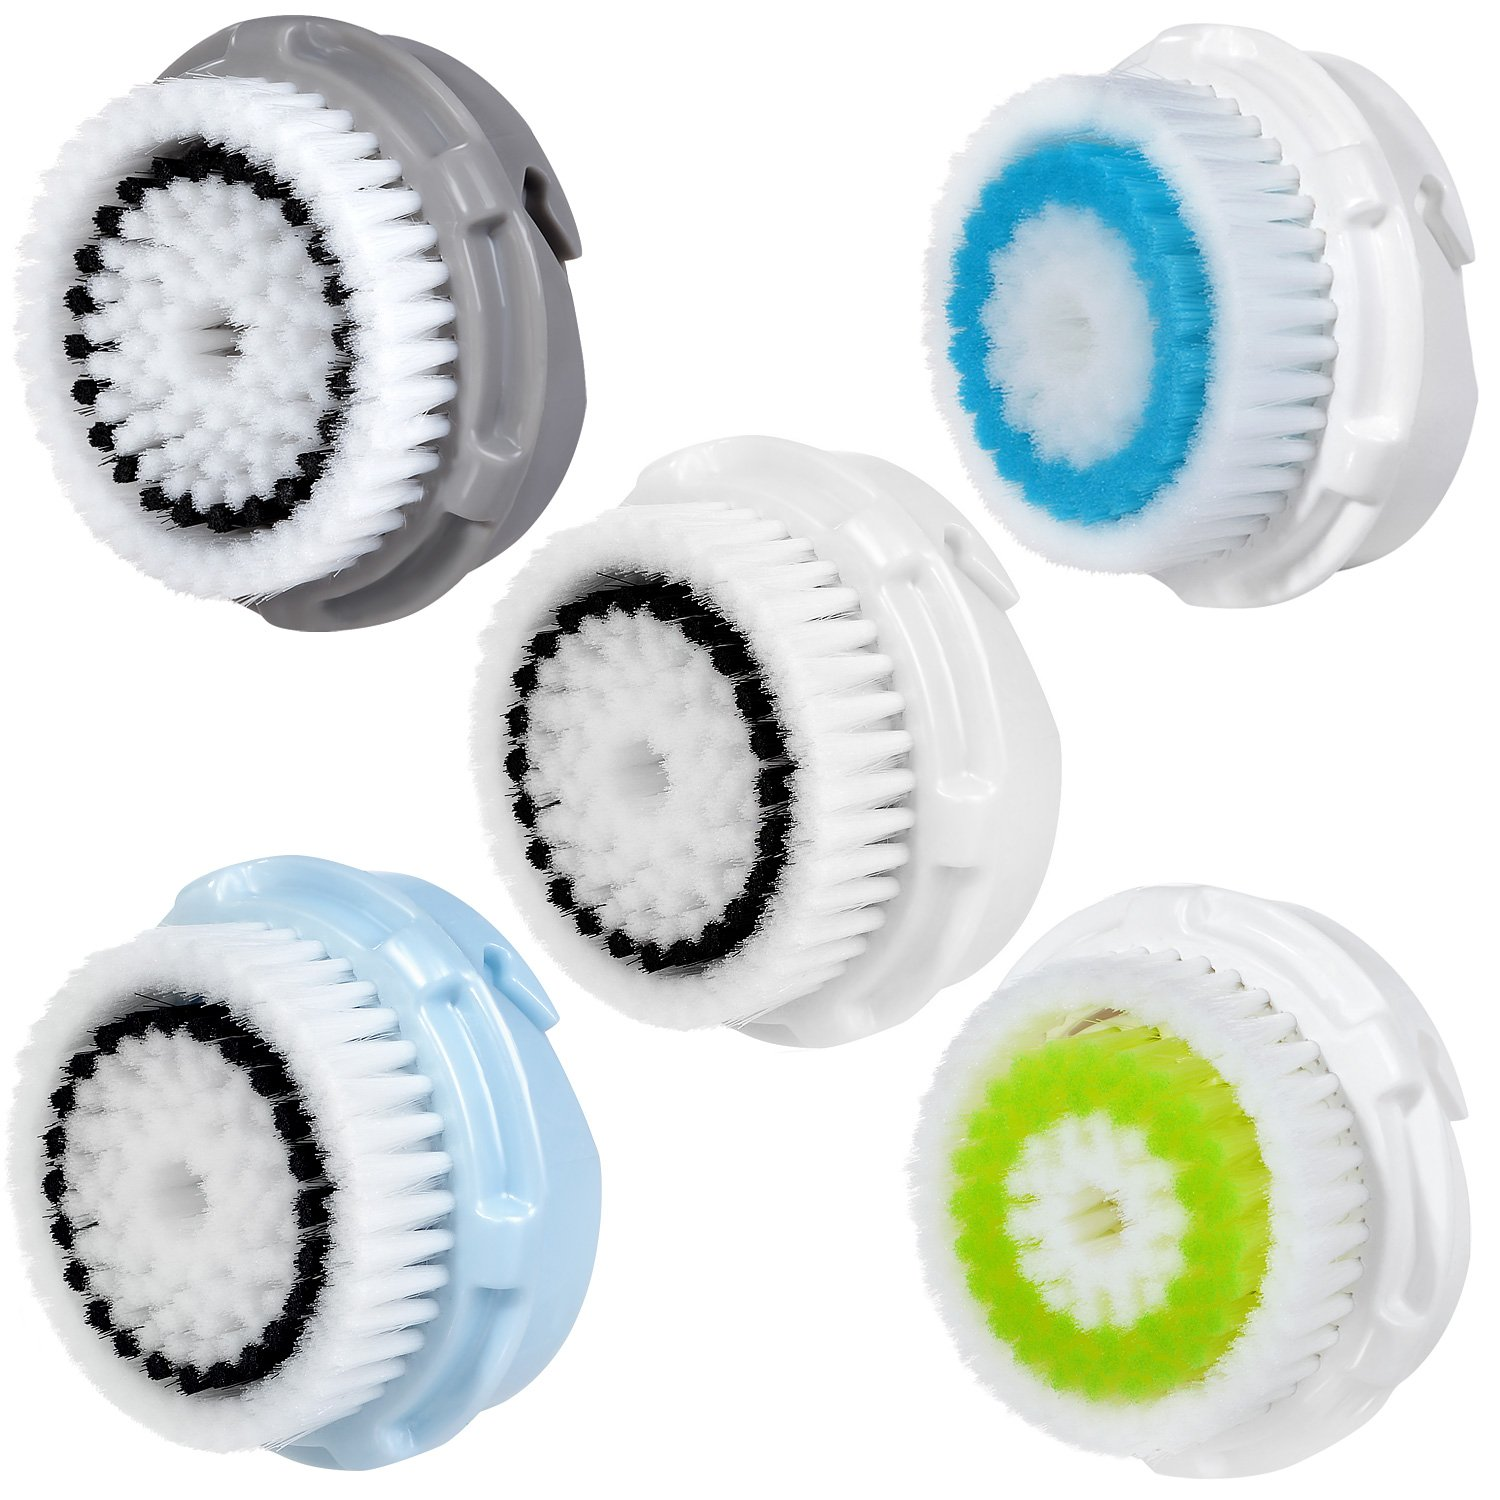 5 x cabezas de cepillo E-Cron. Cabezal de cepillo para la limpieza facial para la piel sensible (Sensitive), Normal, delicado (Delicate), poros profundos (Deep Pore) y acne(Acne) de Clarisonic. Compatible con Mia 1, 2, 3 (Aria), SMART Profile, Alfa Fit, Pl